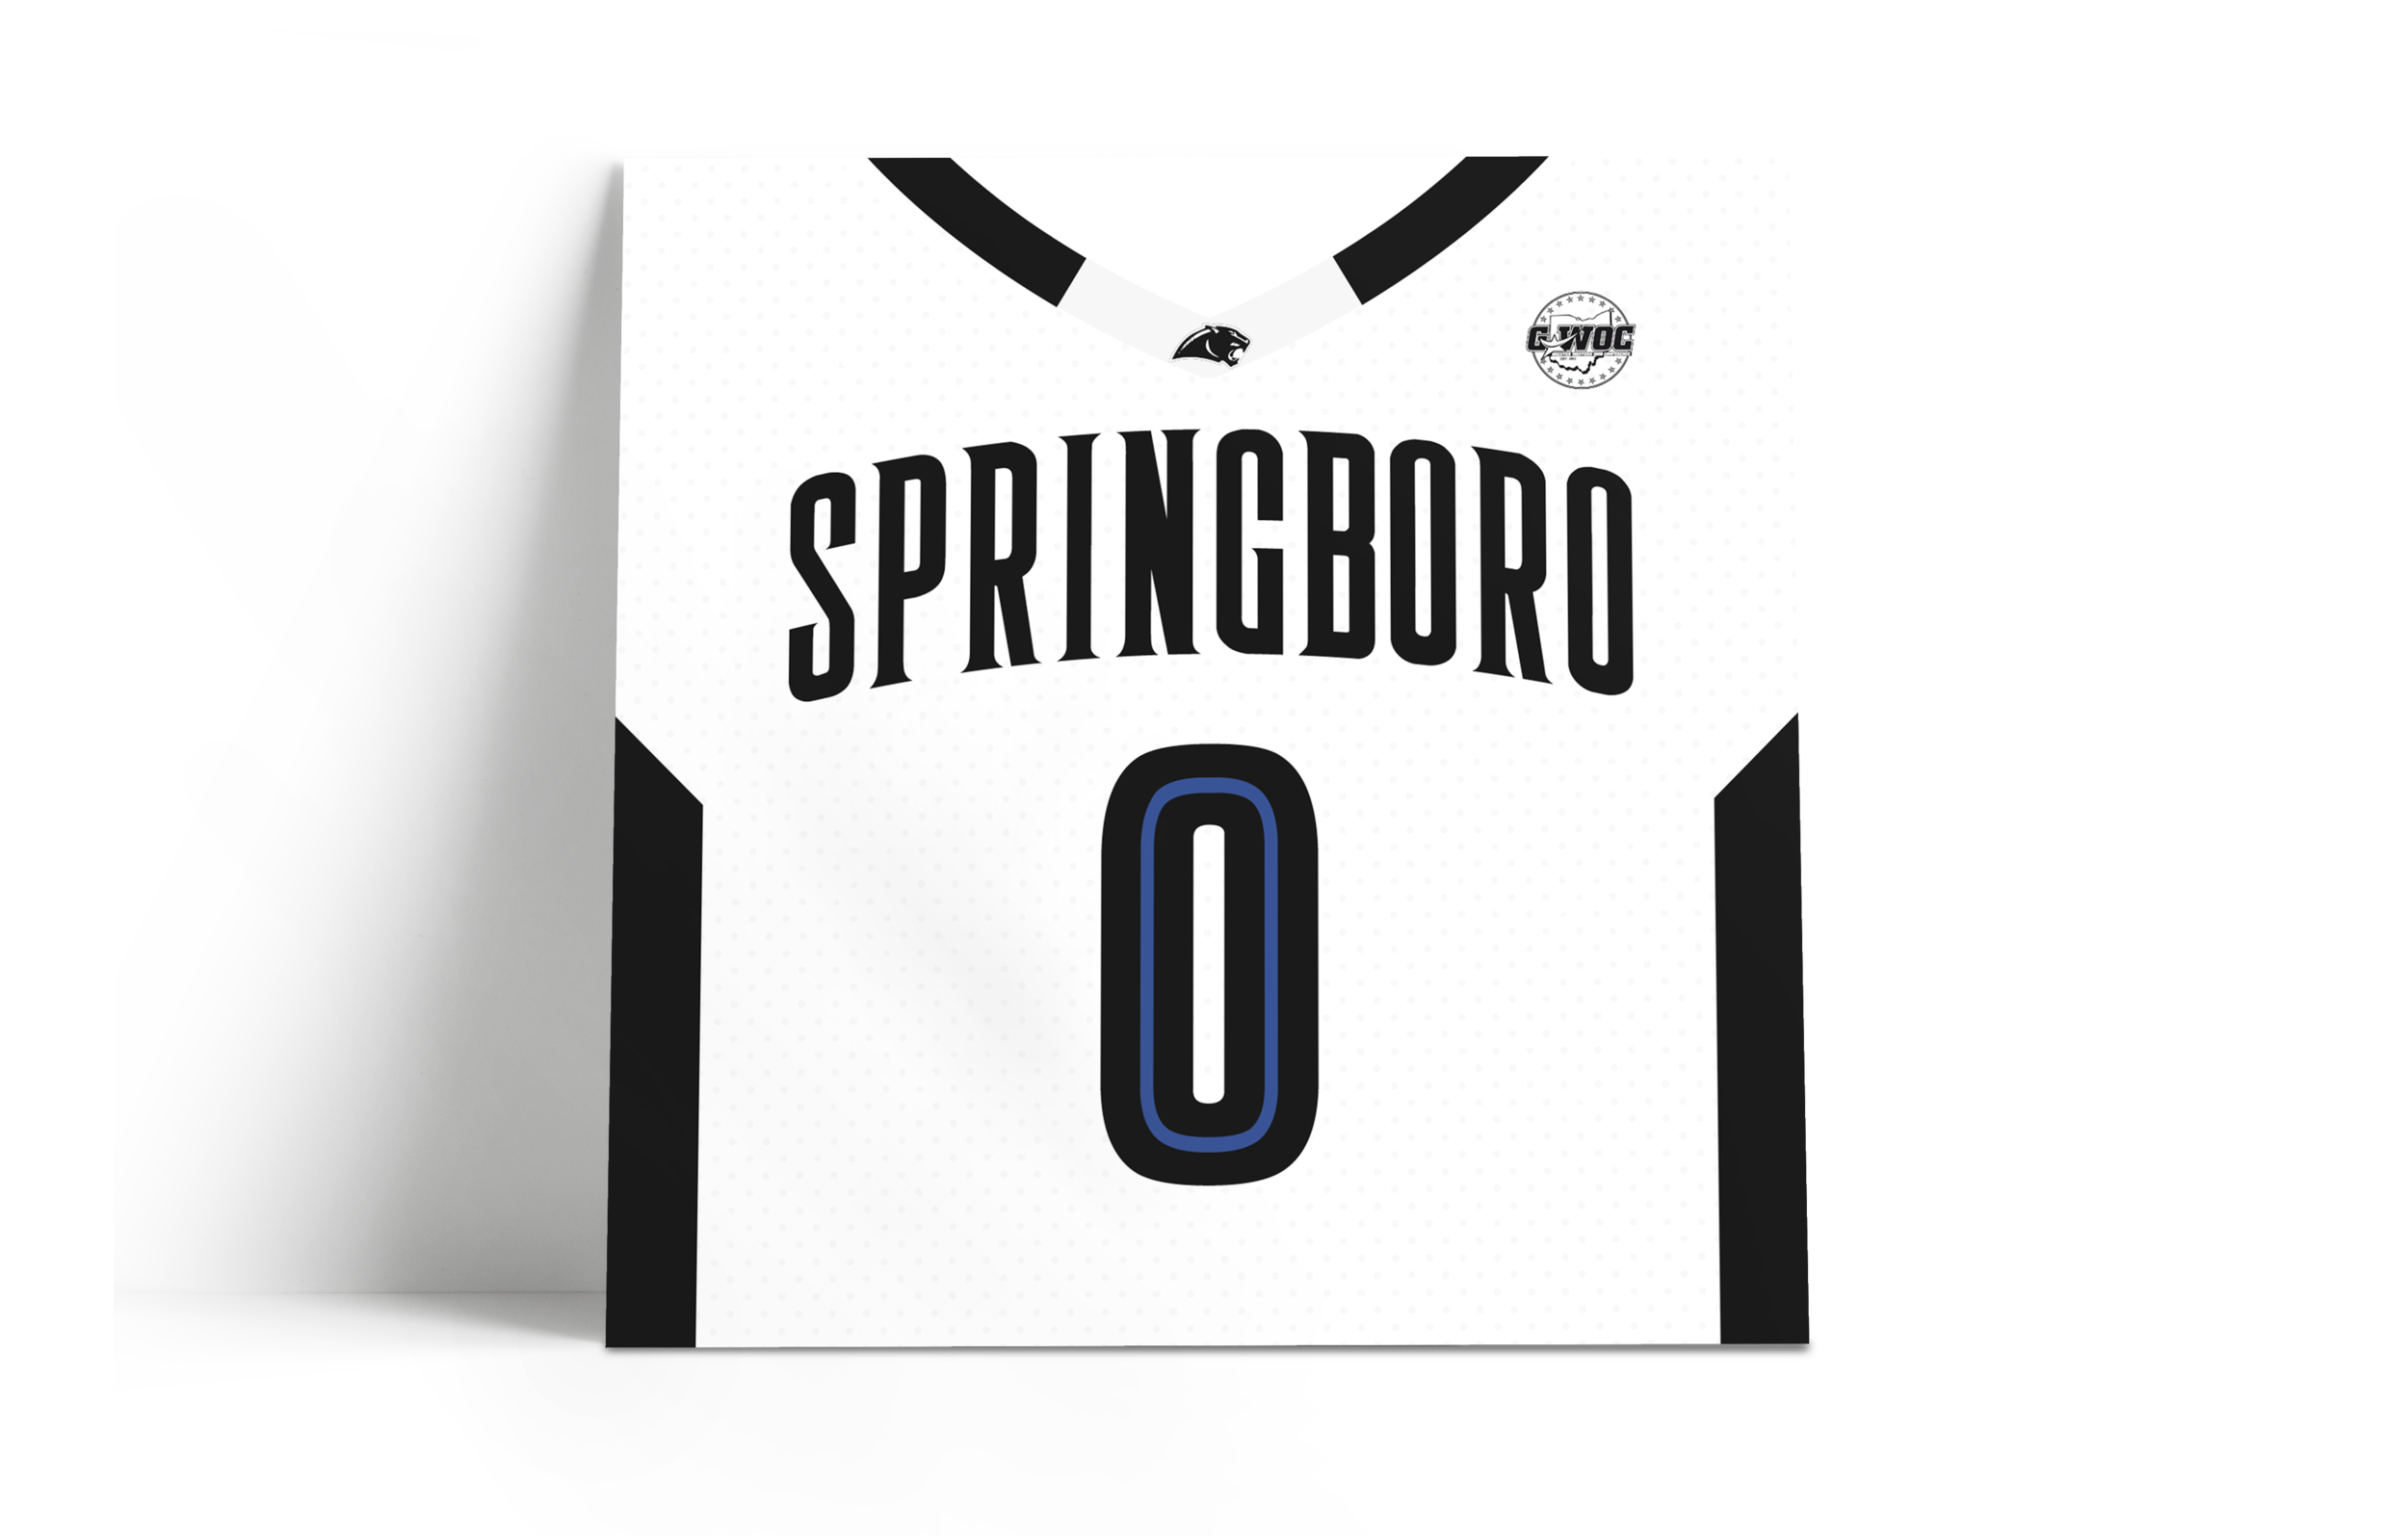 """They look great! Thanks again for getting them done so quickly"" - kyle youker, head basketball coach - springboro hs (OH)"